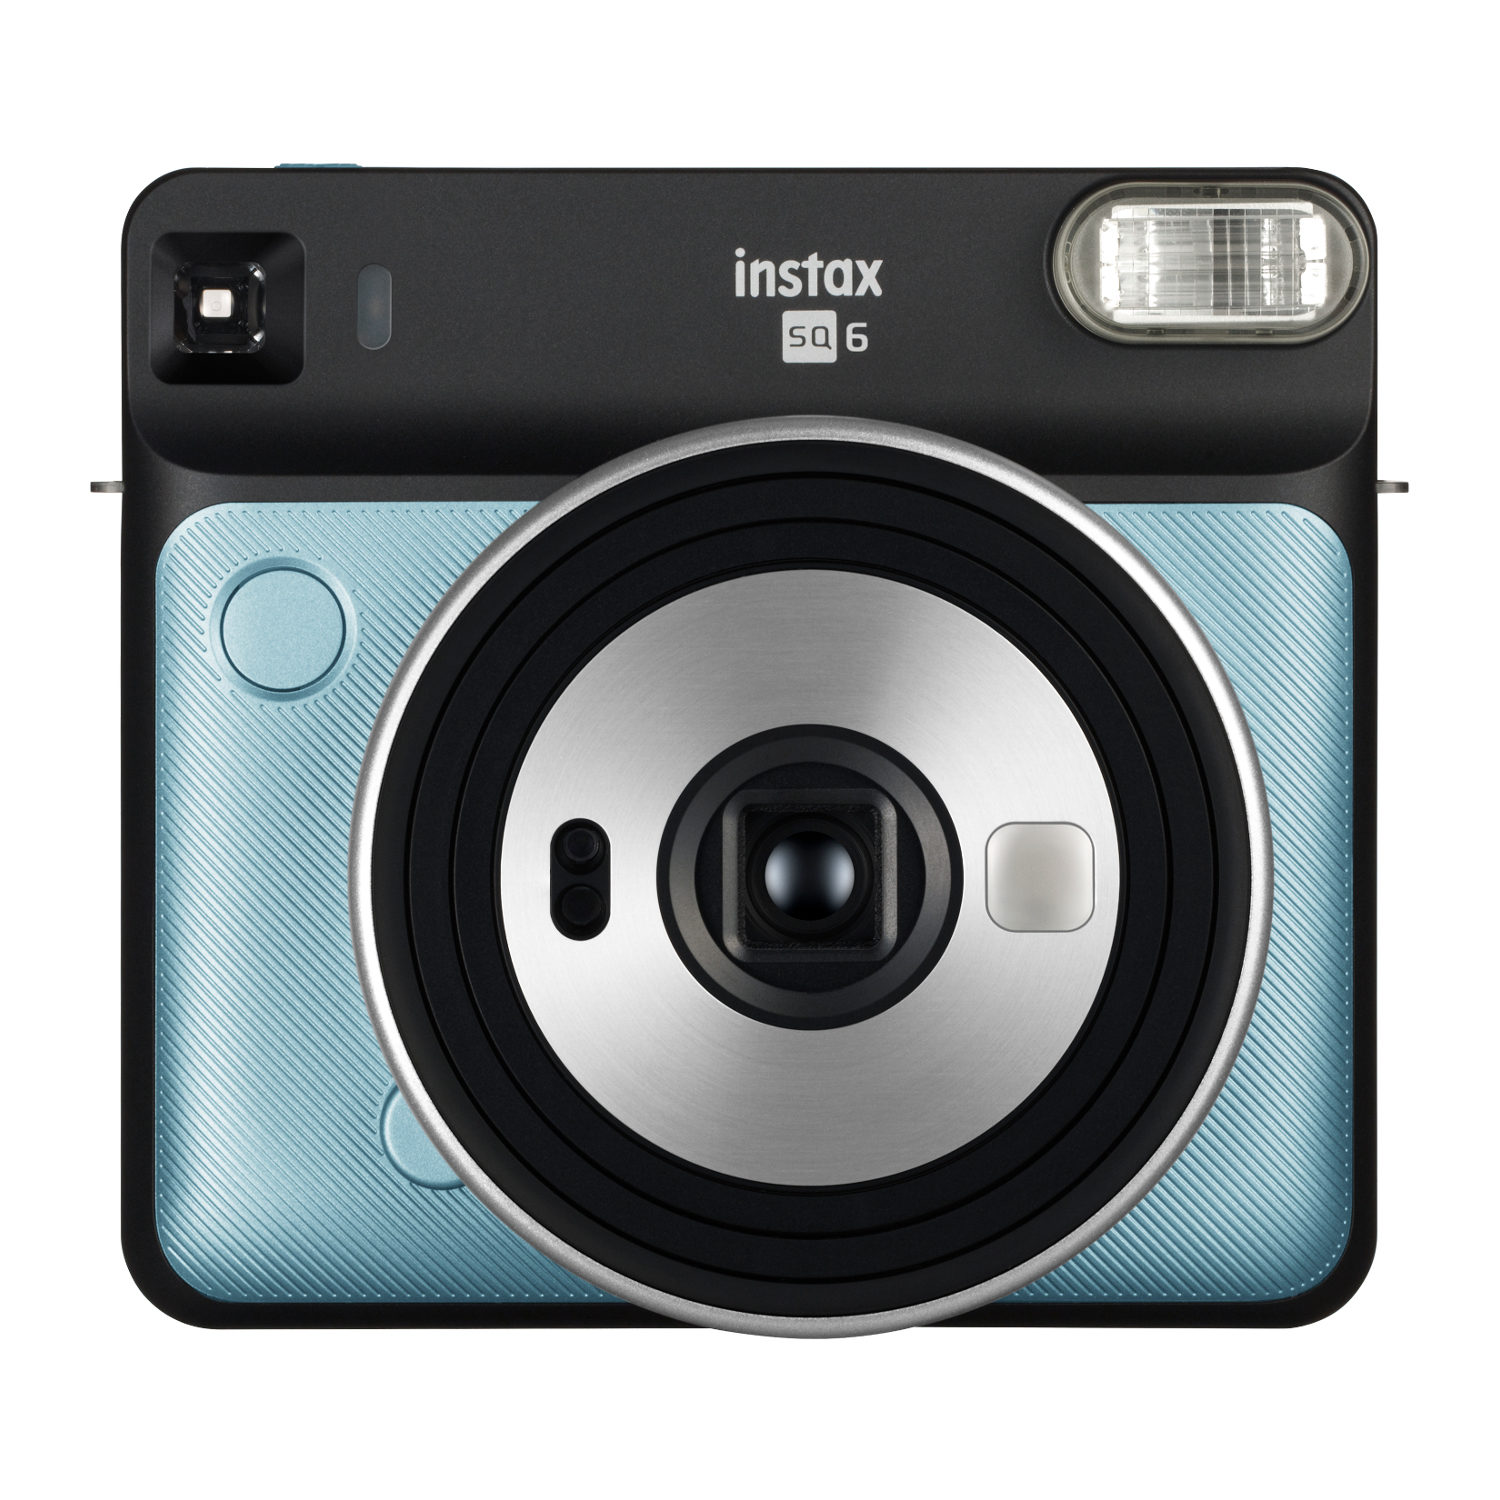 Fujifilm Instax Square SQ6 instant camera Aqua Blue + Fujifilm Instax Square Film (2-Pak) + Jupio CR2 3V Lithium batterij + Fujifilm Instax SQ6 Case Graphite Gray